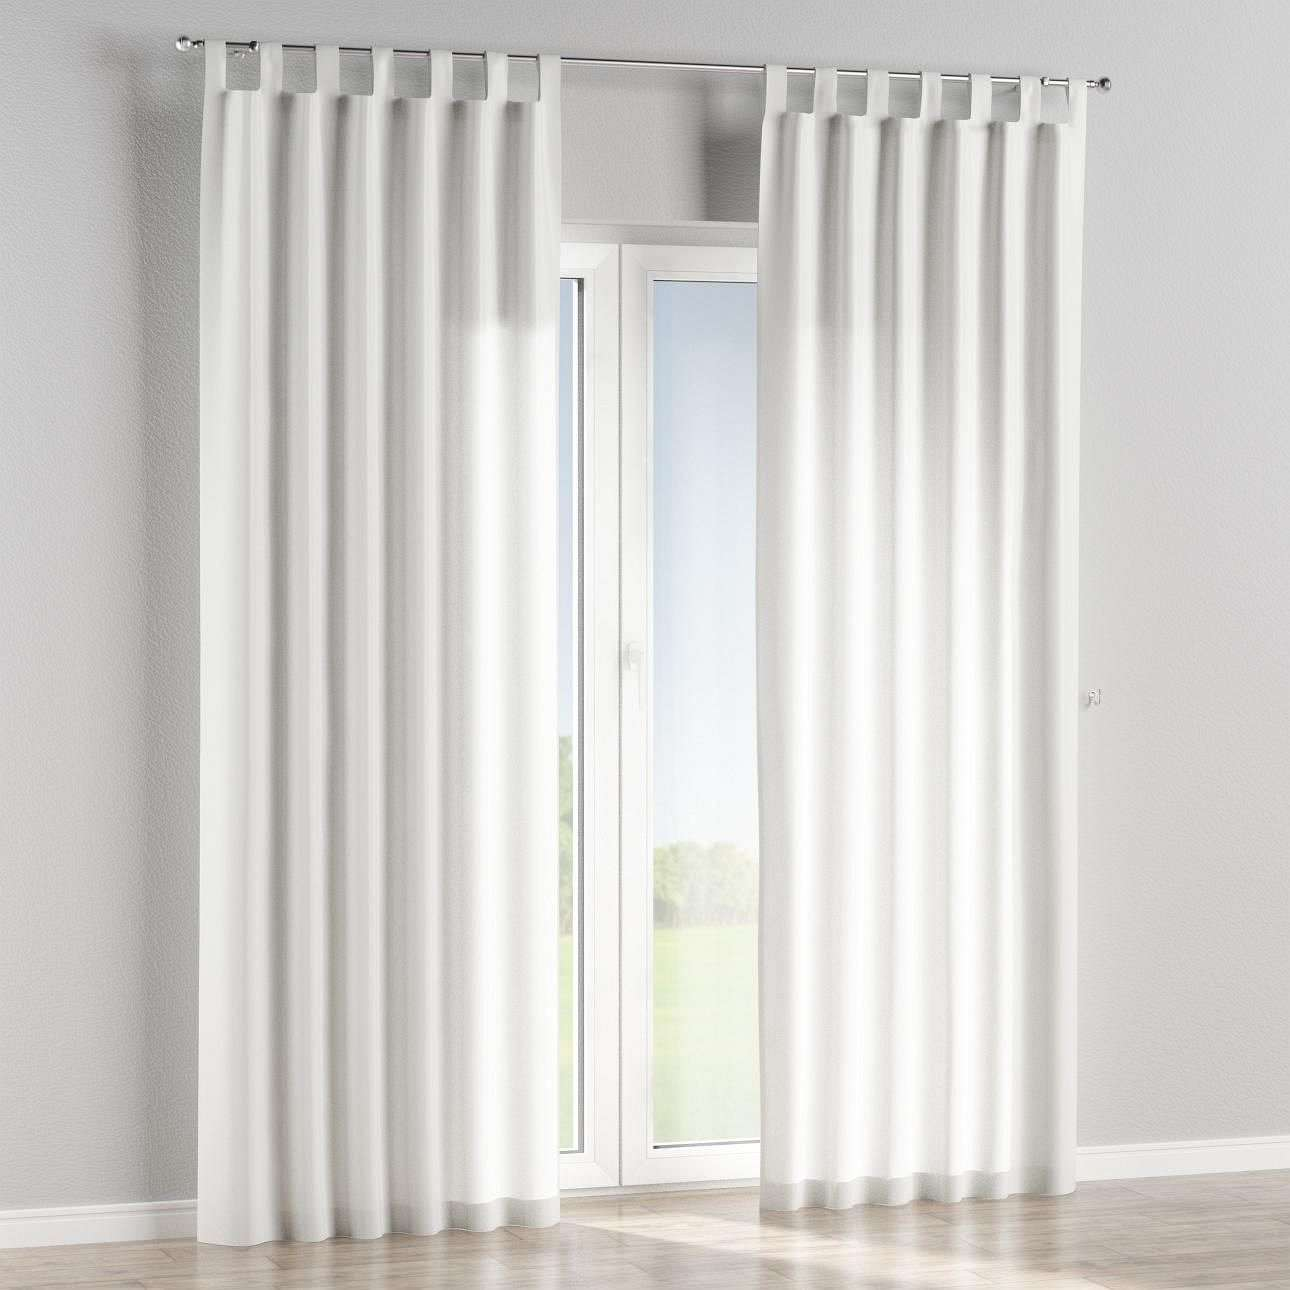 Tab top curtains in collection Milano, fabric: 150-21